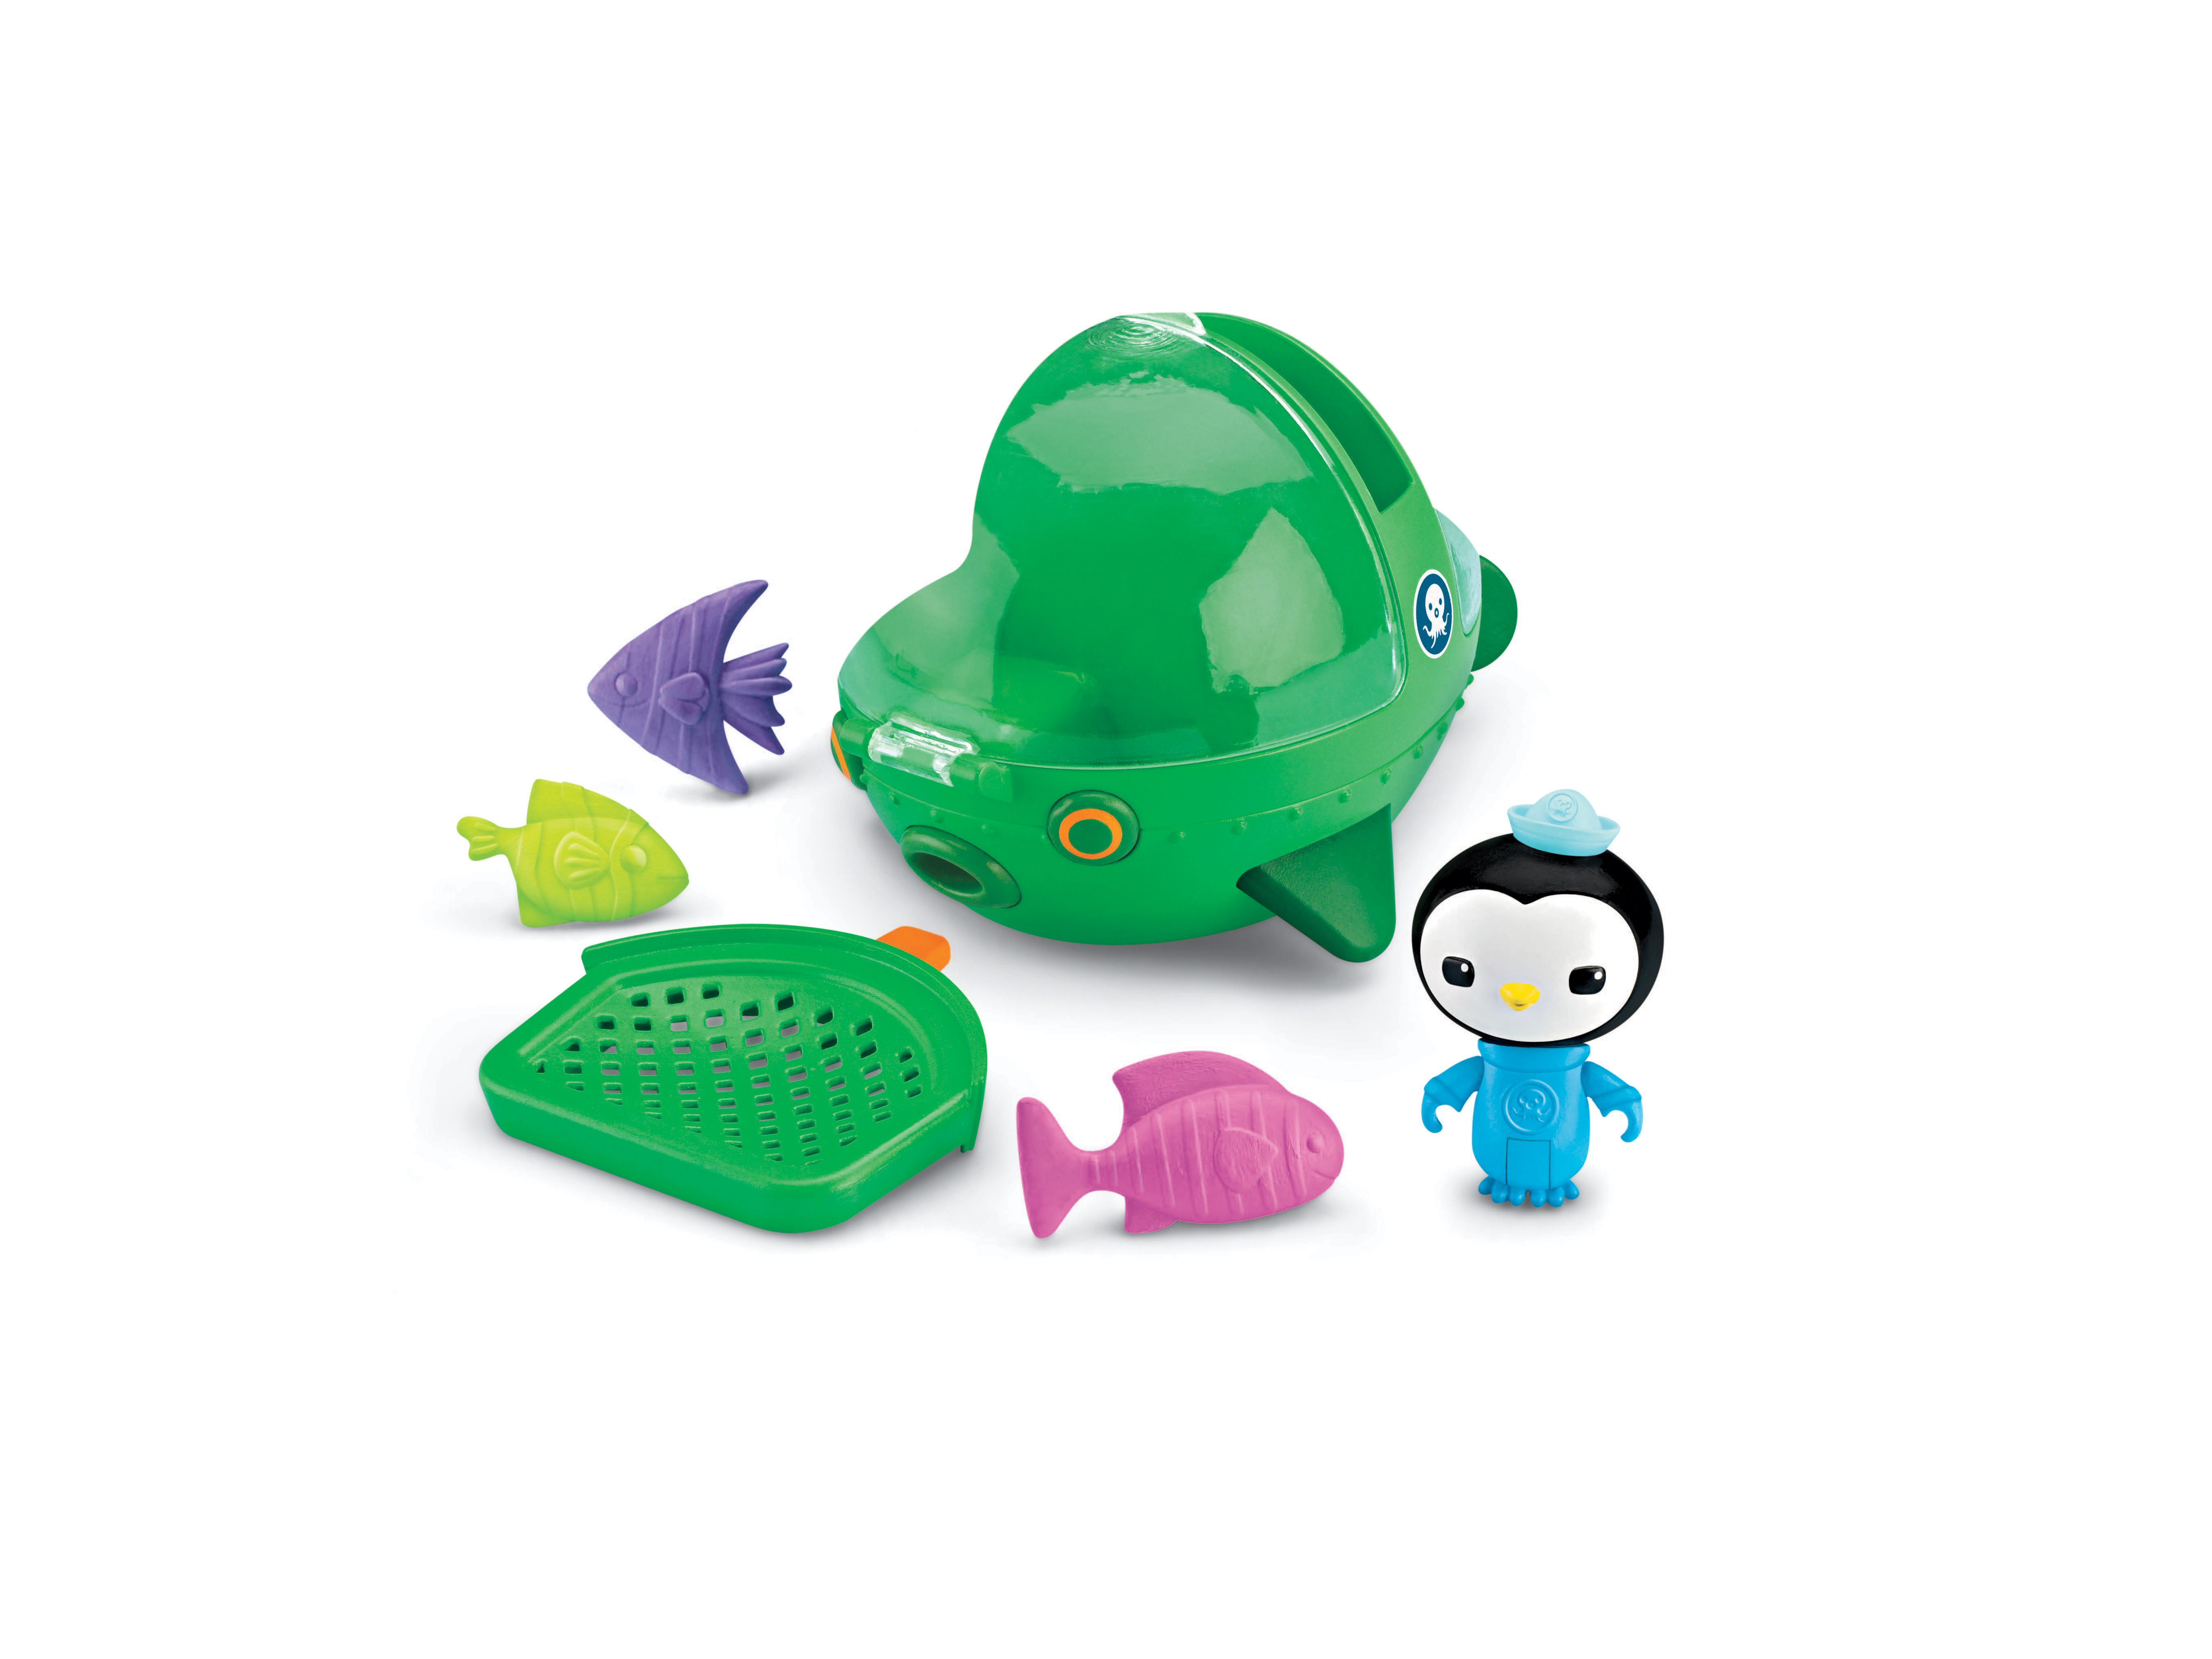 Fisher-Price Octonauts Gup-E and - 1855.0KB